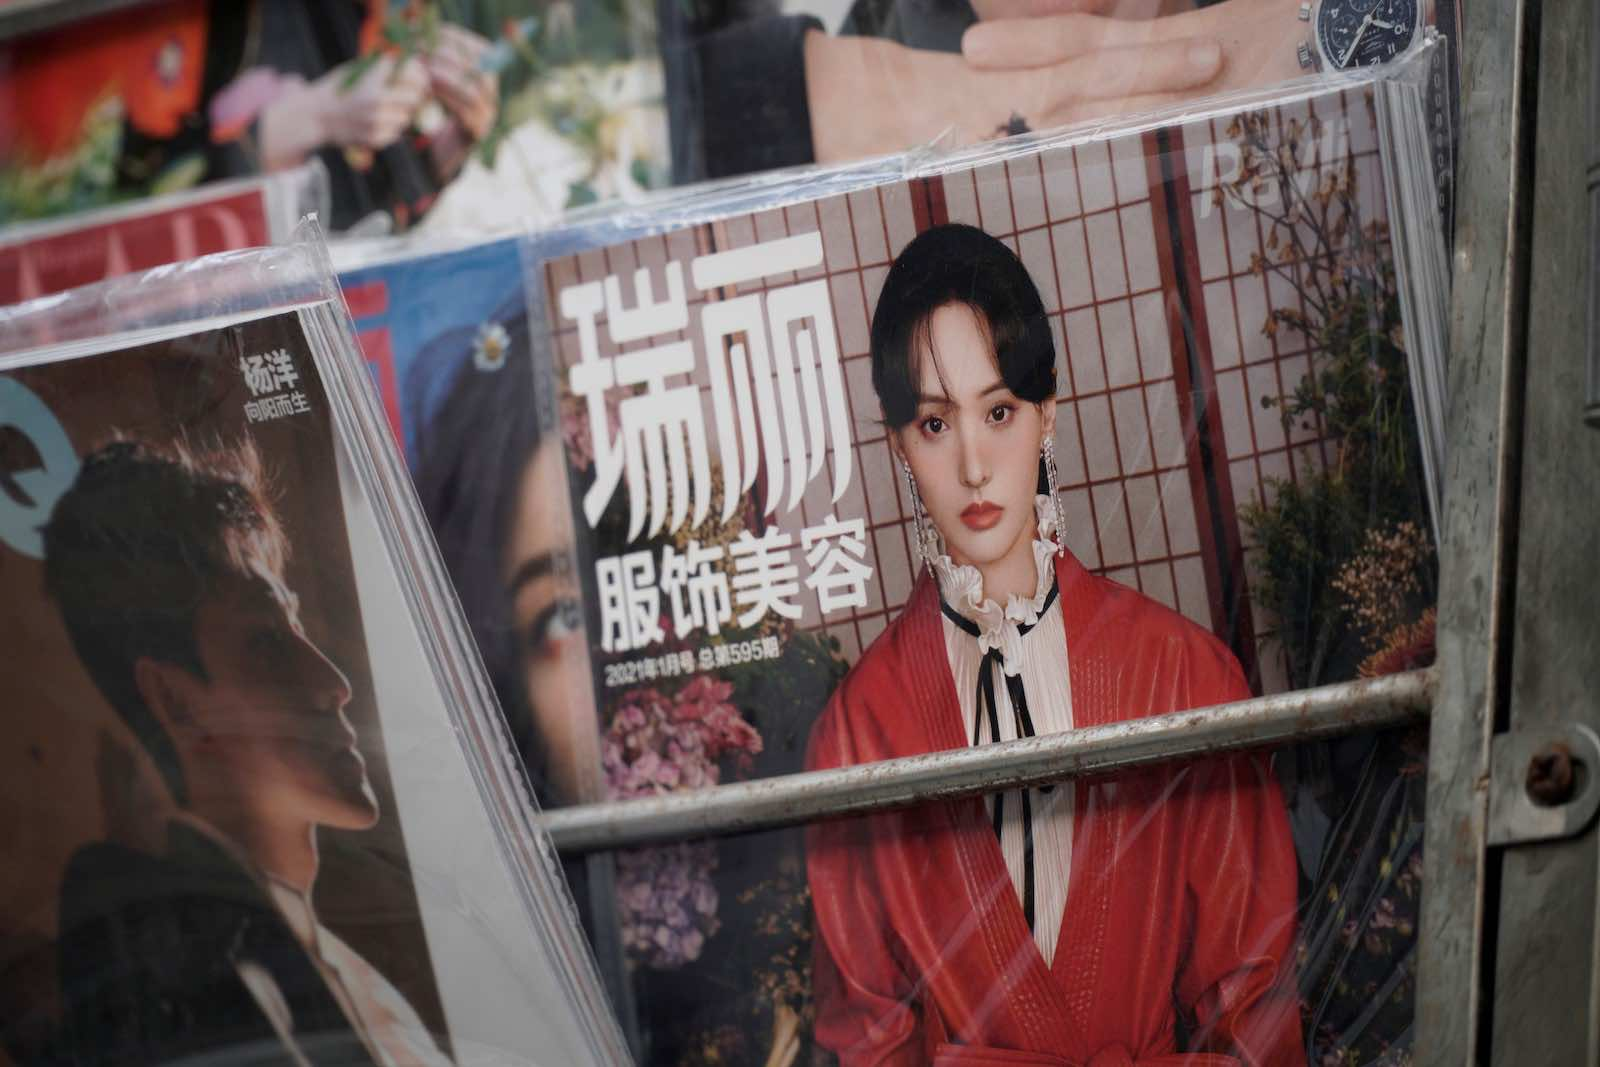 Chinese film star Zheng Shuang on the cover of a fashion magazine in a Beijing newsstand in January (Jade Gao/AFP via Getty Images)